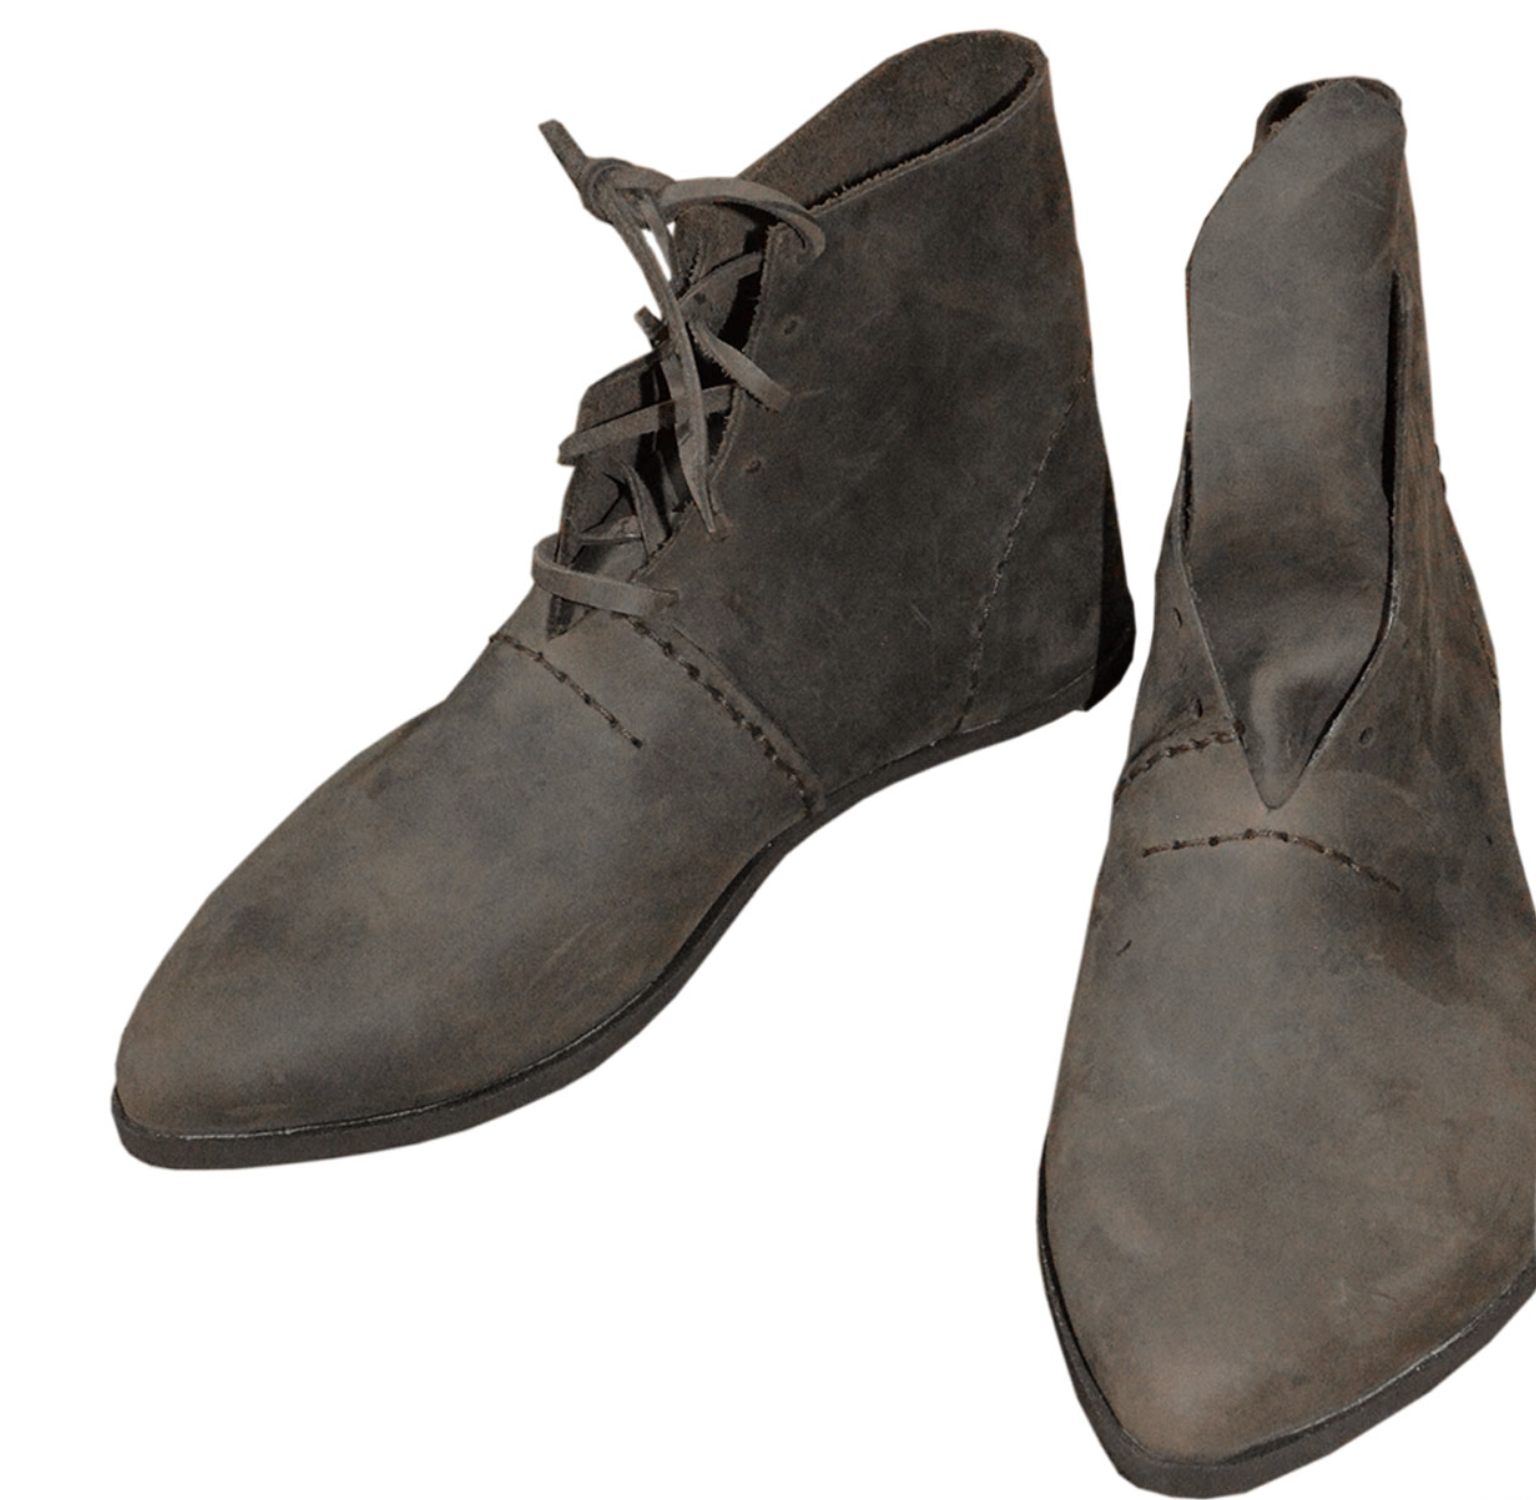 Chaussures Homme : MSS1437 - 185 €